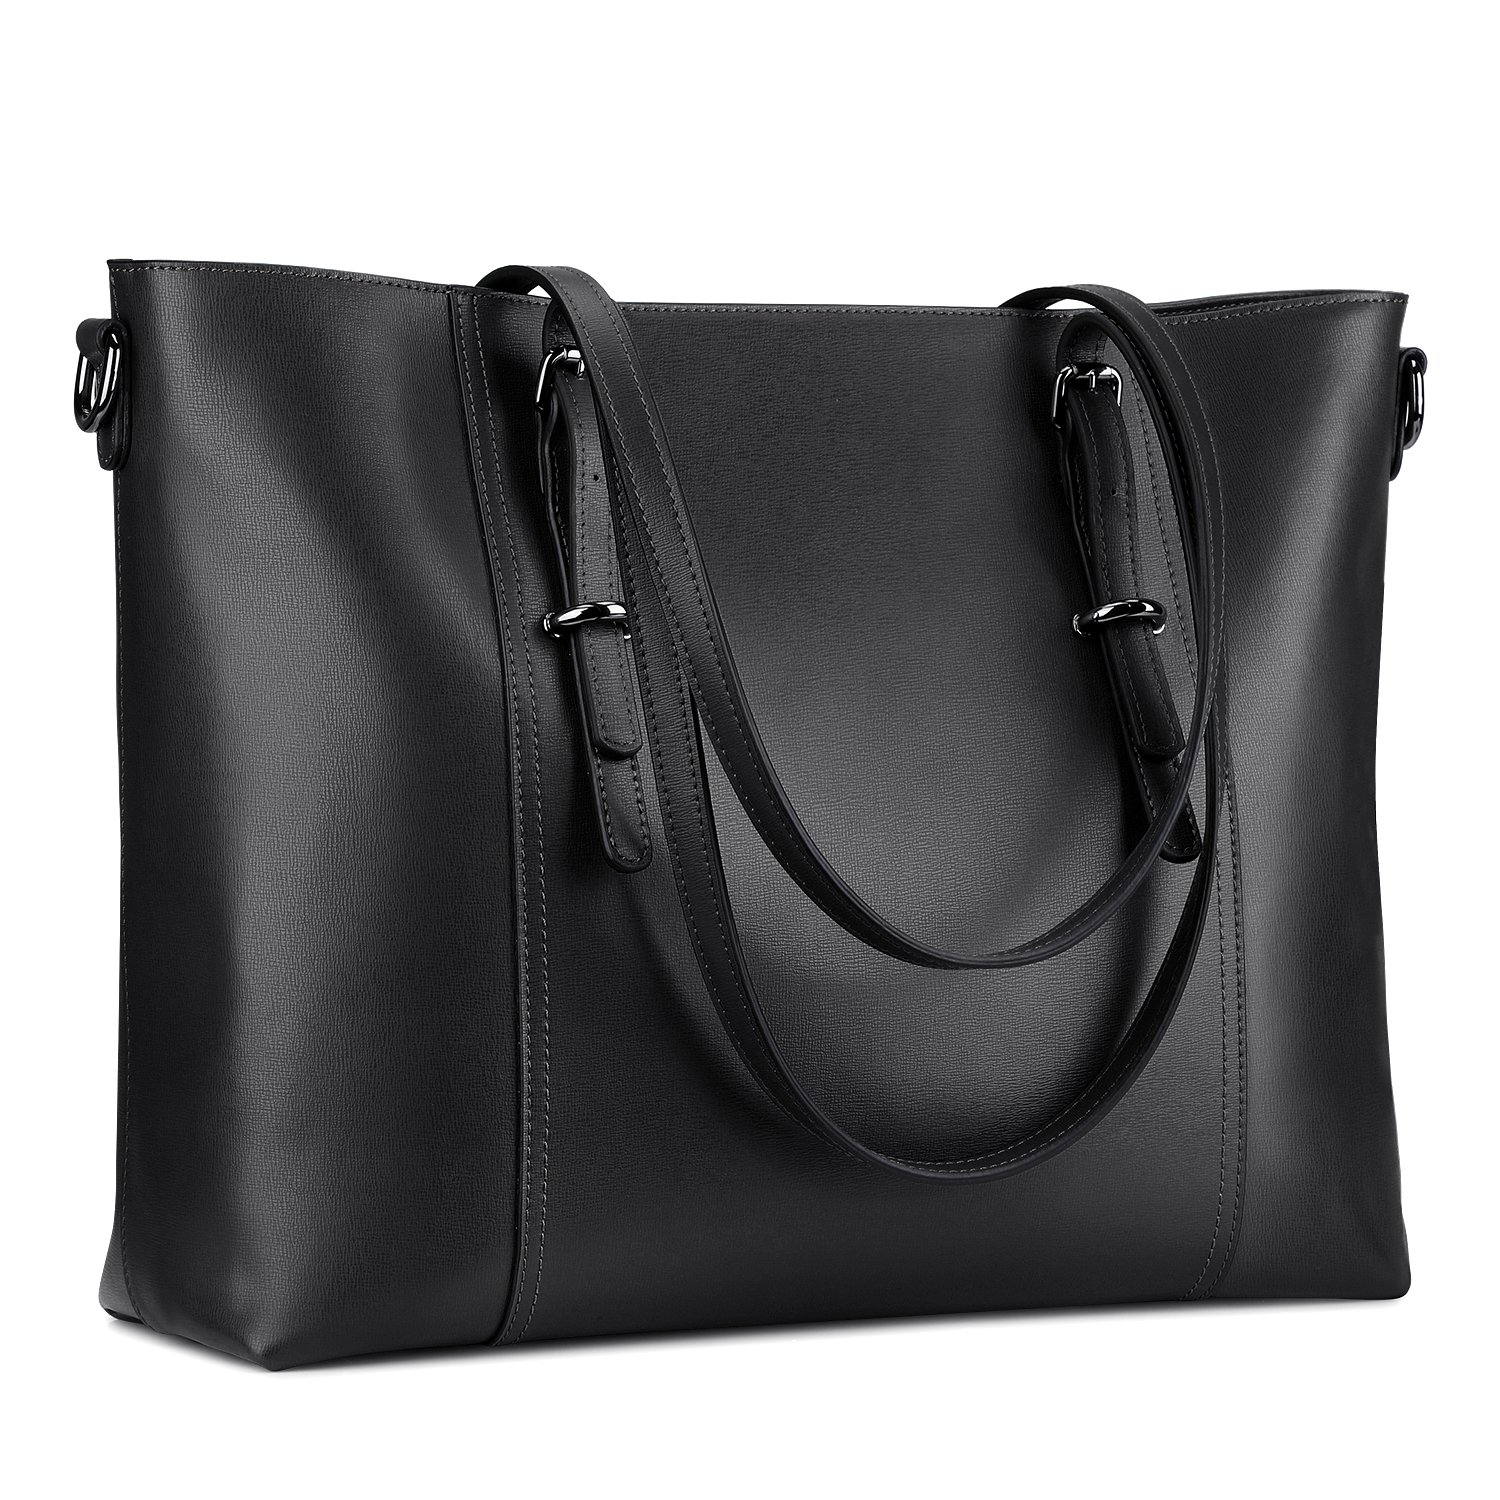 S-ZONE Leather Laptop Bag for Women Fits up to 15.6 inch Business Tote Shoulder Bag Purse (Black) by S-ZONE (Image #1)